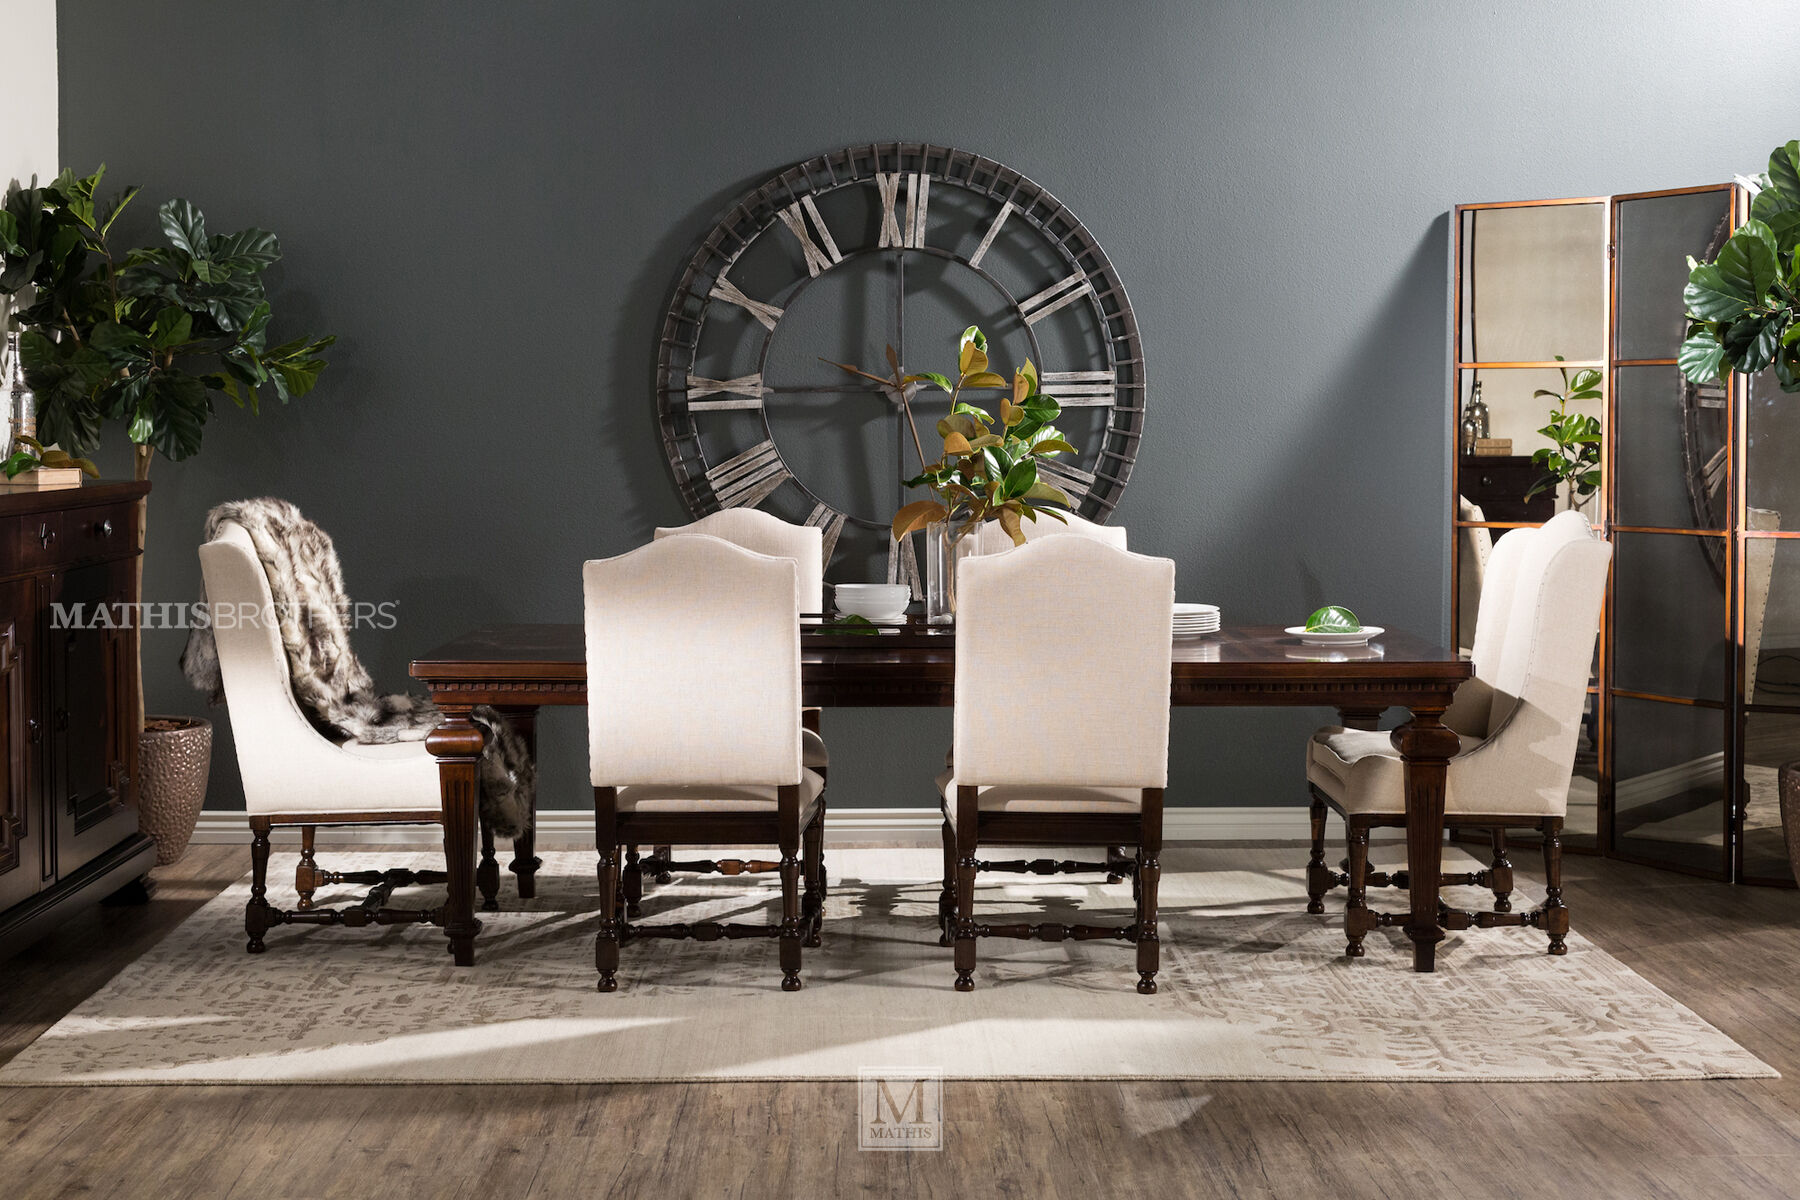 Universal Proximity Seven Piece Dining Set Mathis Brothers Furniture